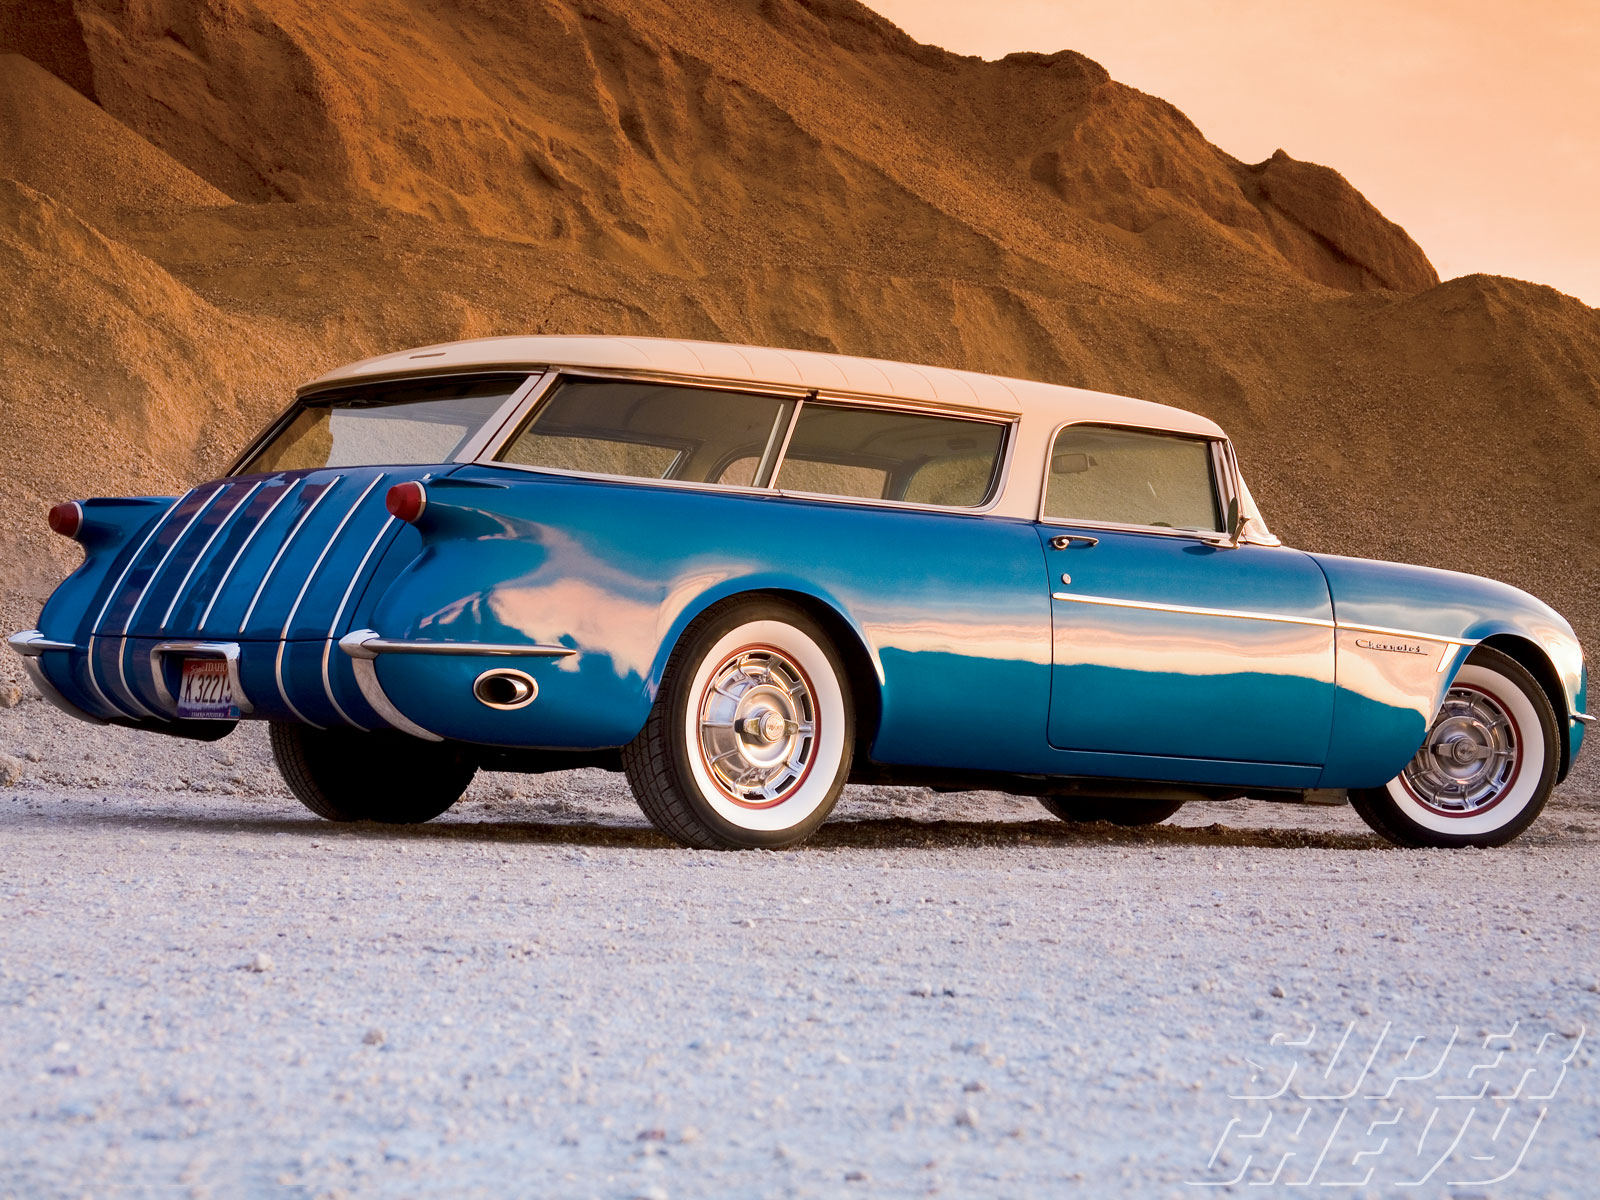 1600x1200 - Chevrolet Nomad Wallpapers 9